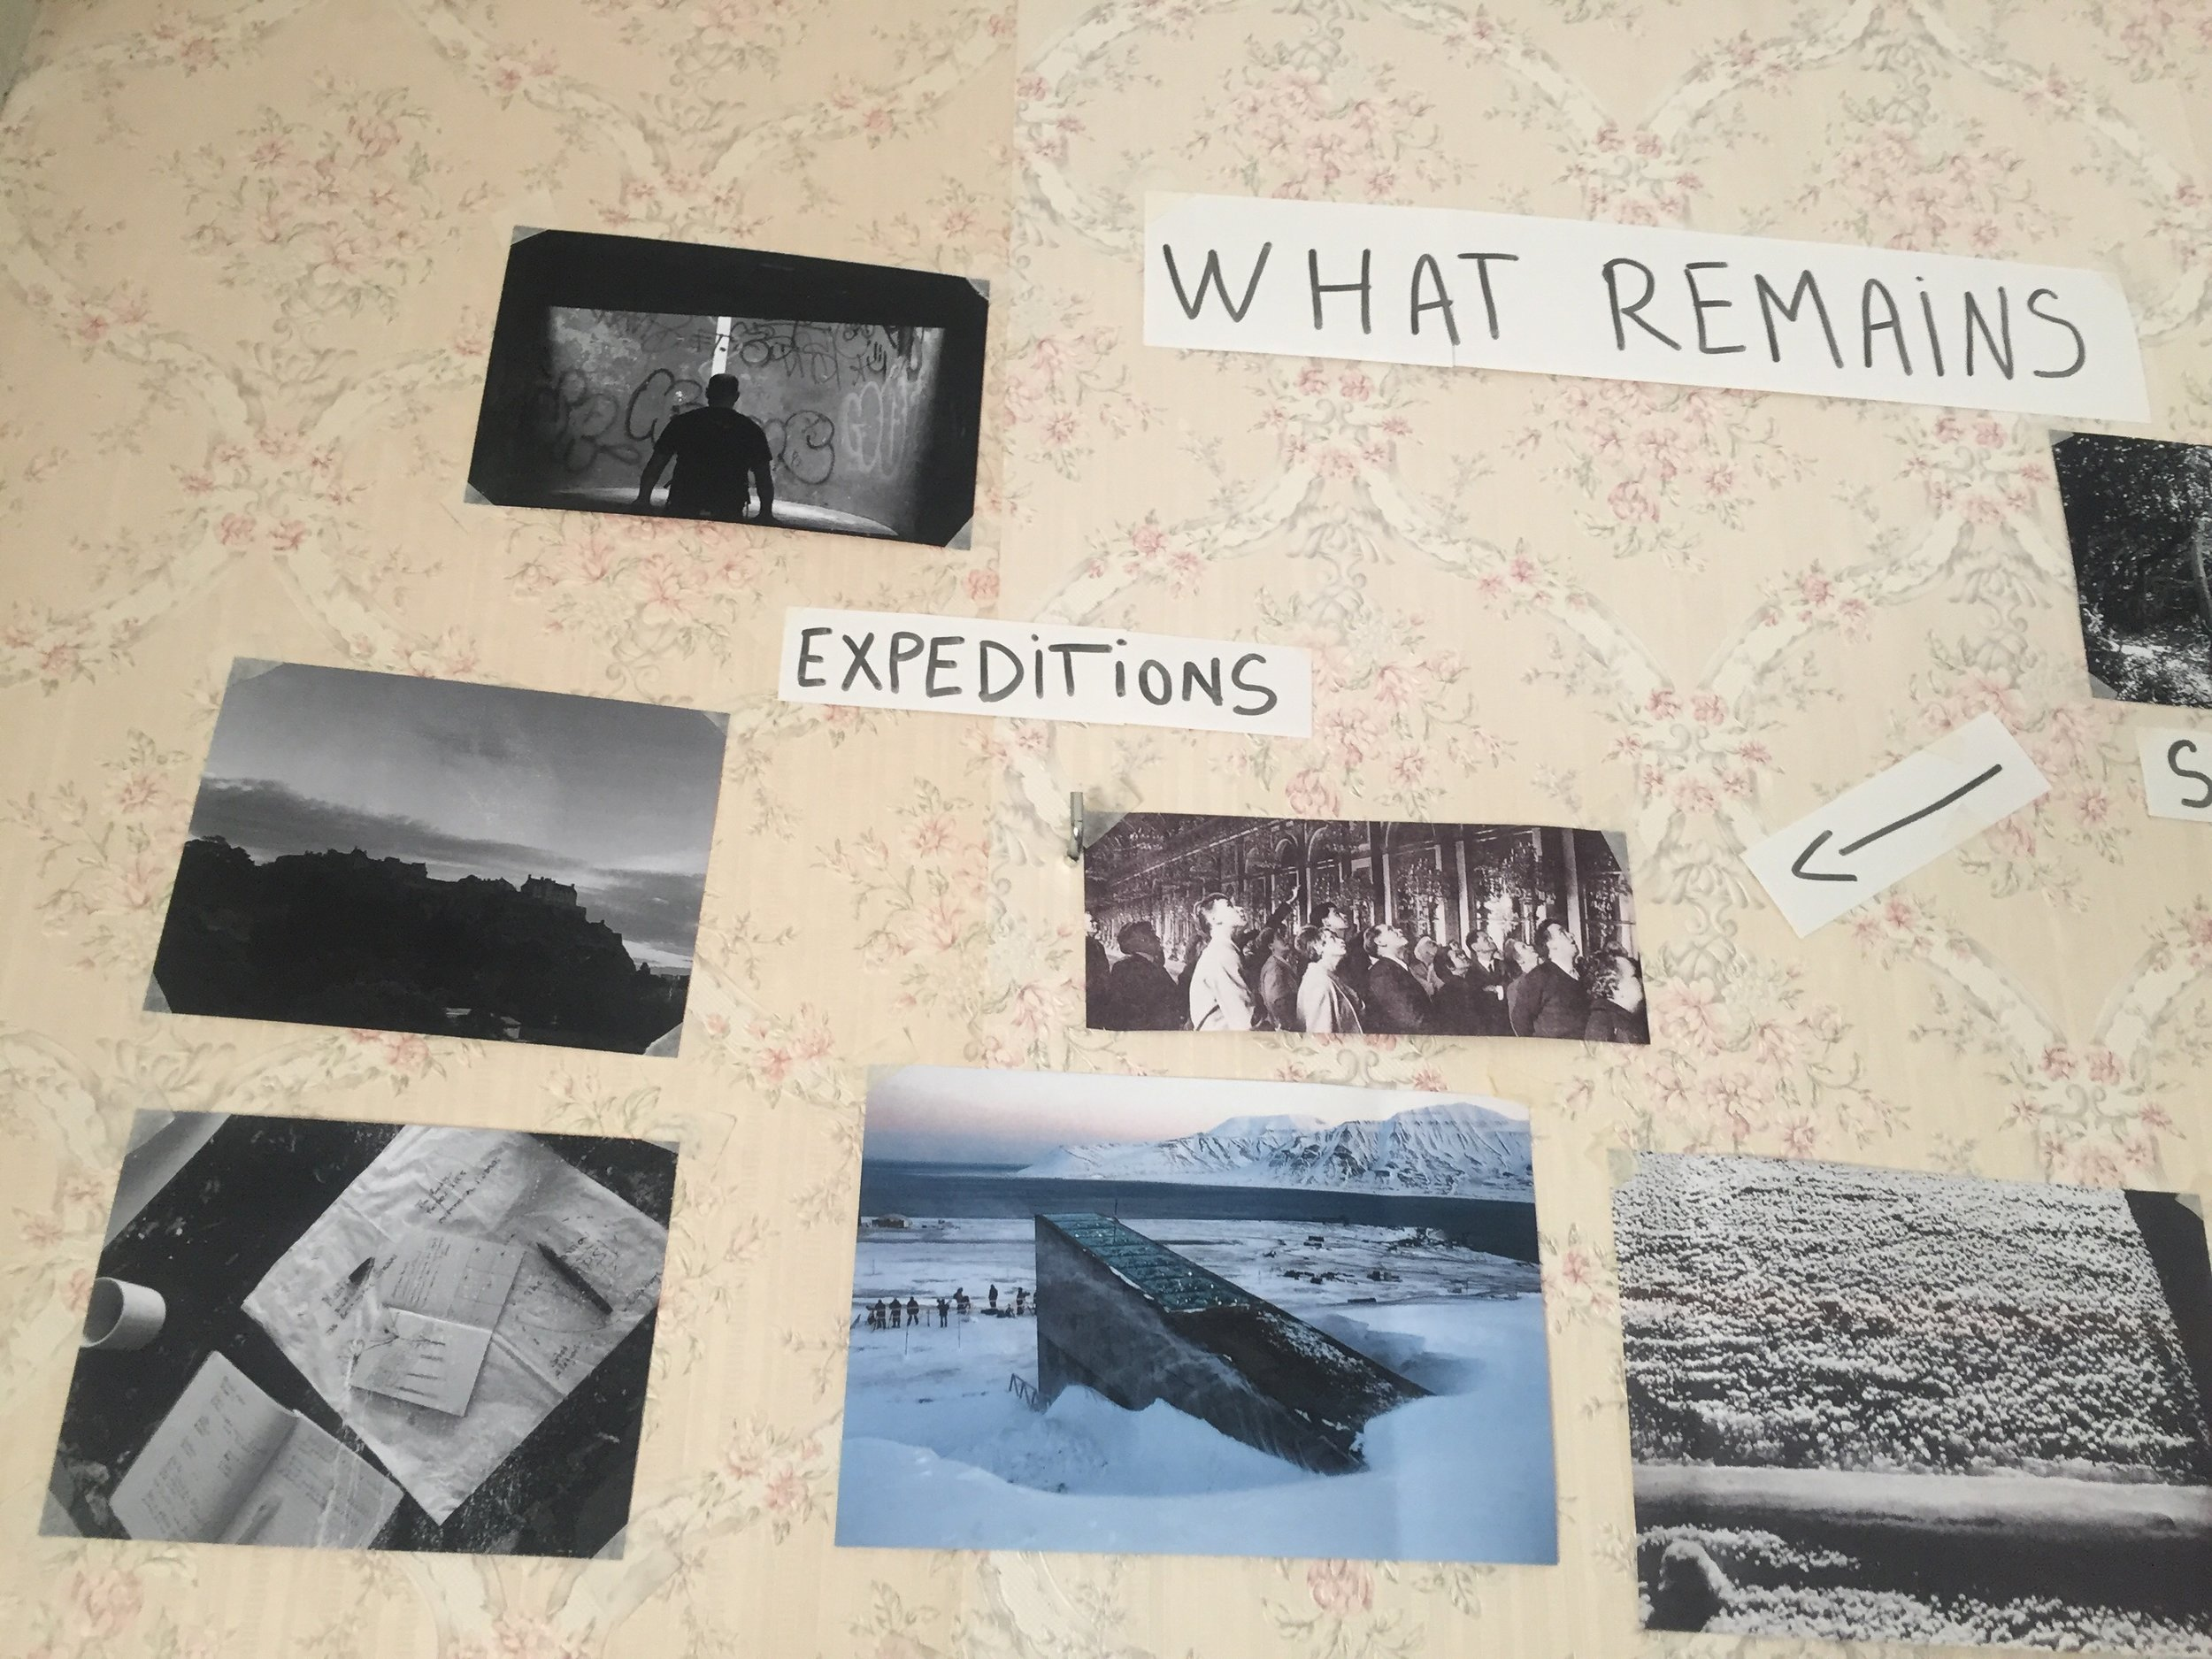 research wall 5.jpg